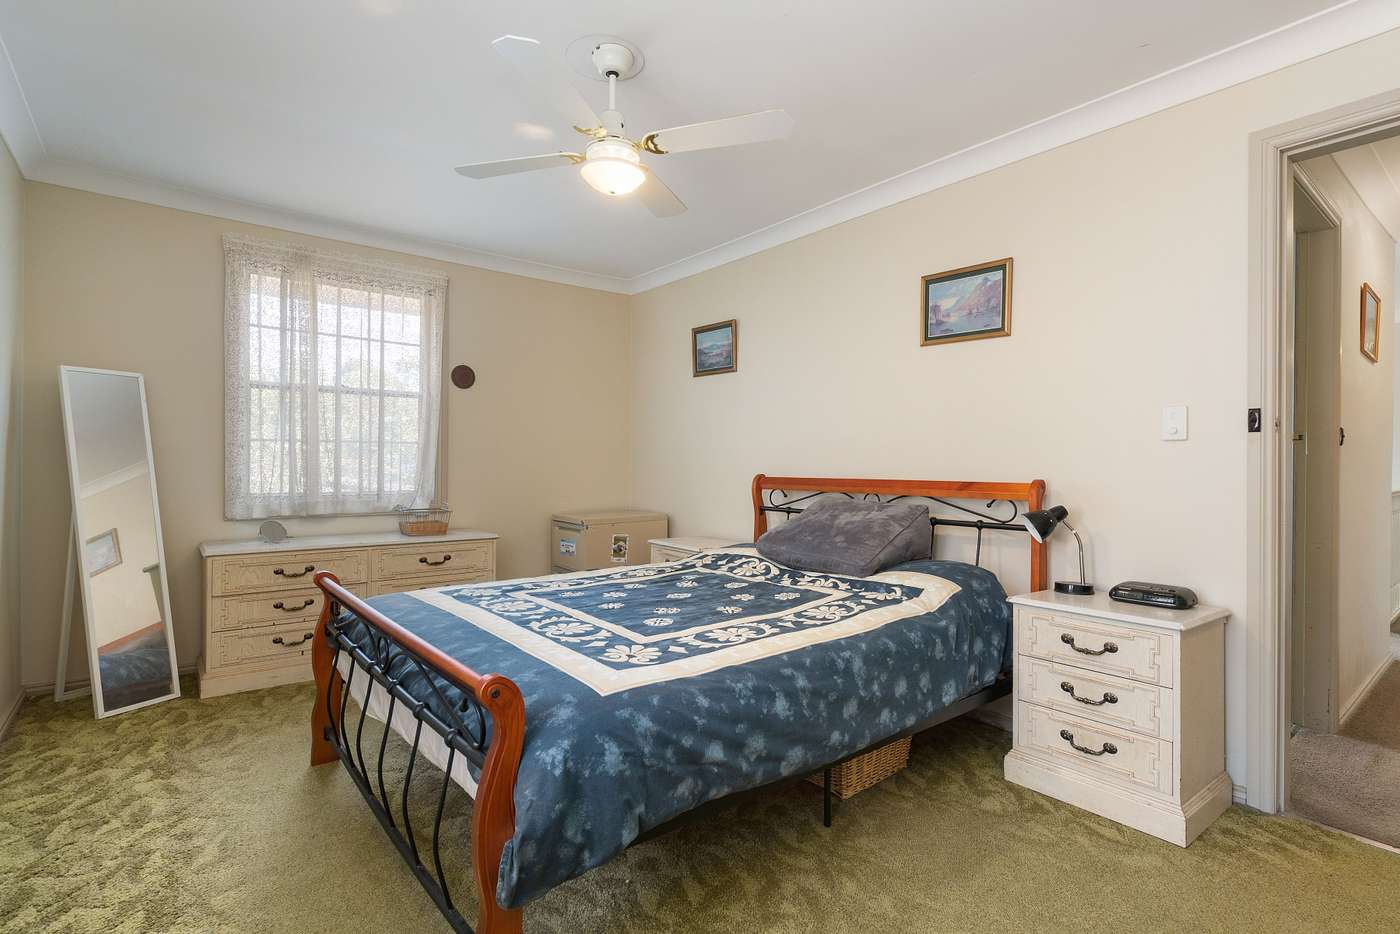 Main view of Homely house listing, 18 Eucalyptus Drive, Westleigh NSW 2120